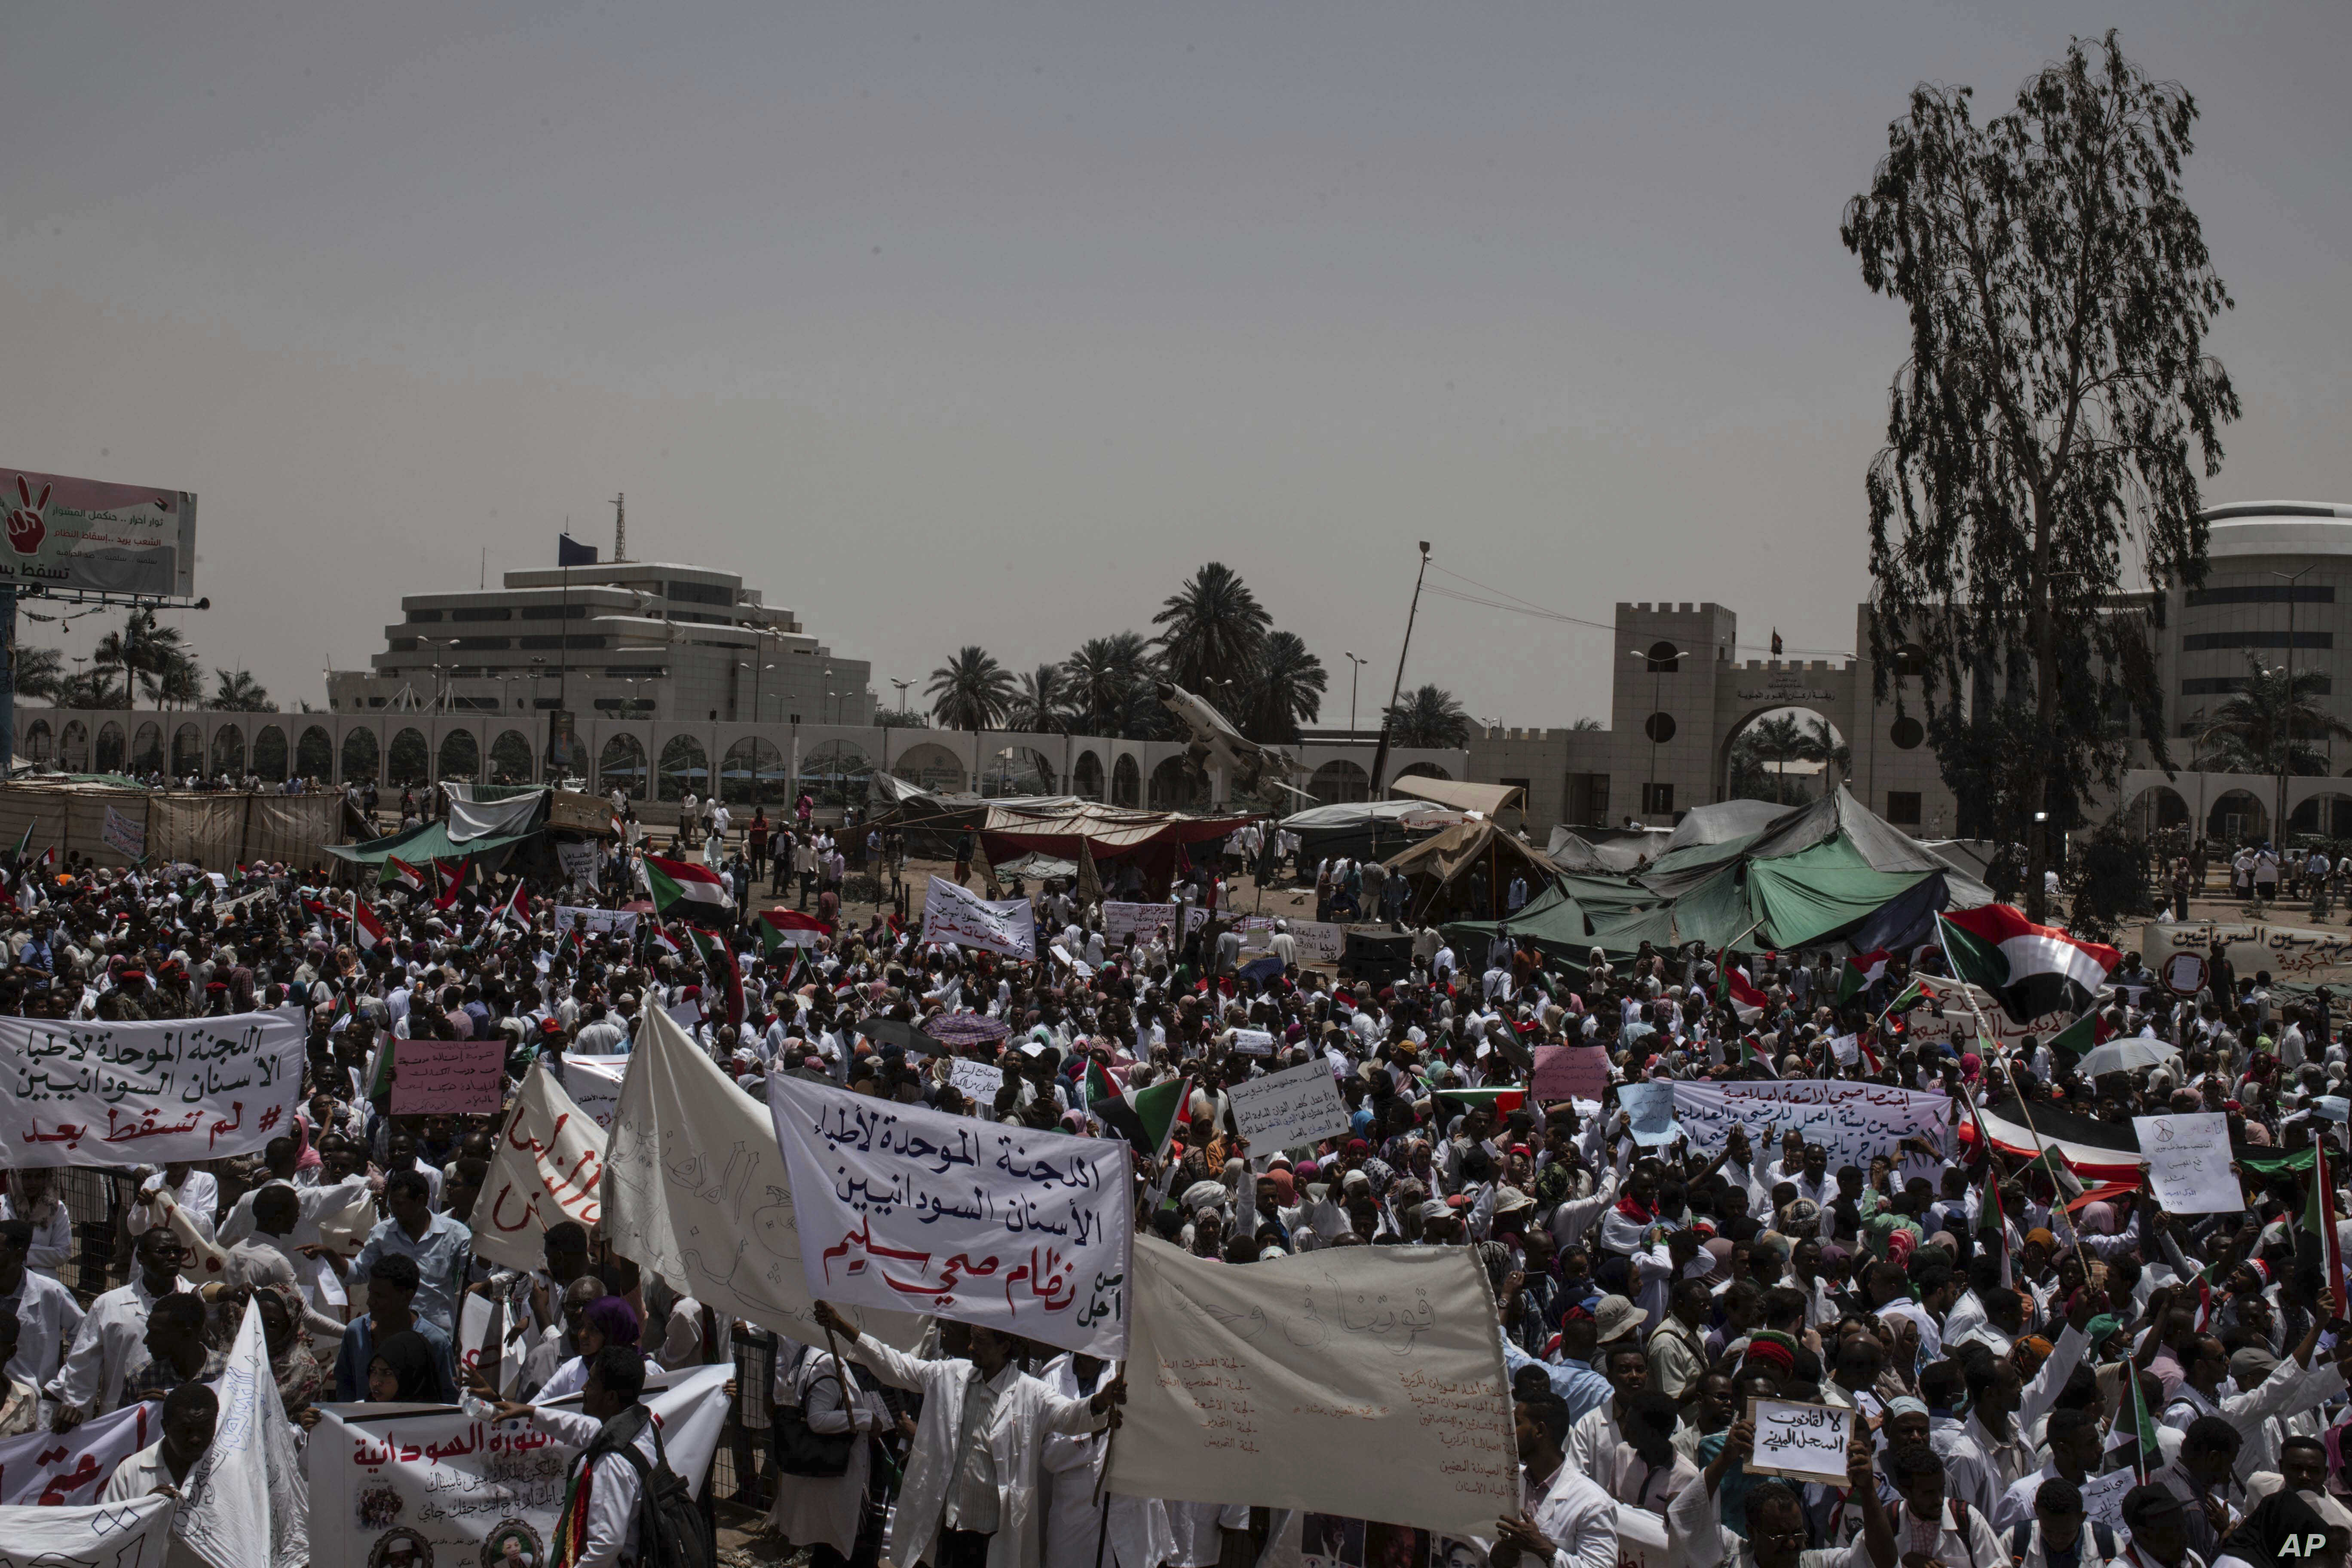 A group of protesters from the Sudanese medical profession syndicate march at the sit-in inside the Armed Forces Square, in Khartoum, Sudan, Wednesday, April 17, 2019.